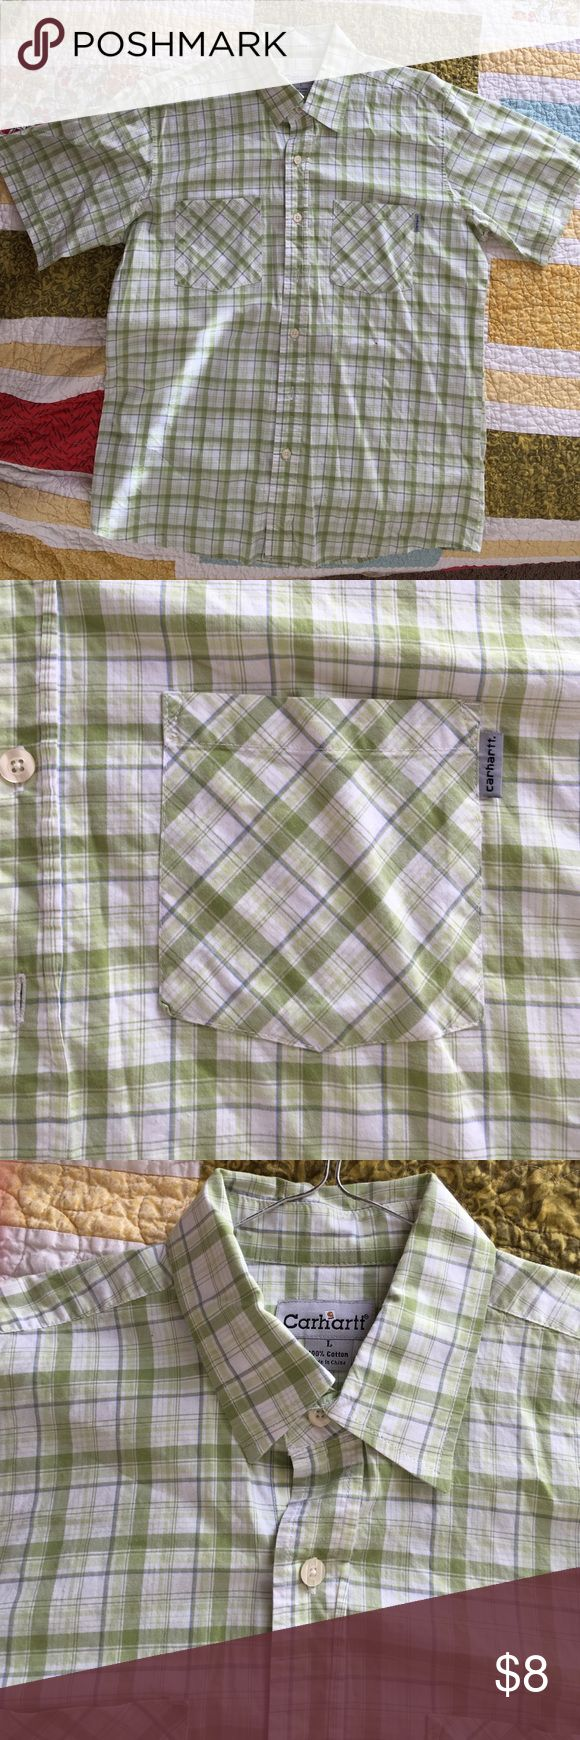 Large men's Carhartt button down shirt large men's button down Carhartt shirt. Light green plaid. Does have a tiny hole just below the pocket you can hardly see. Carhartt Shirts Casual Button Down Shirts